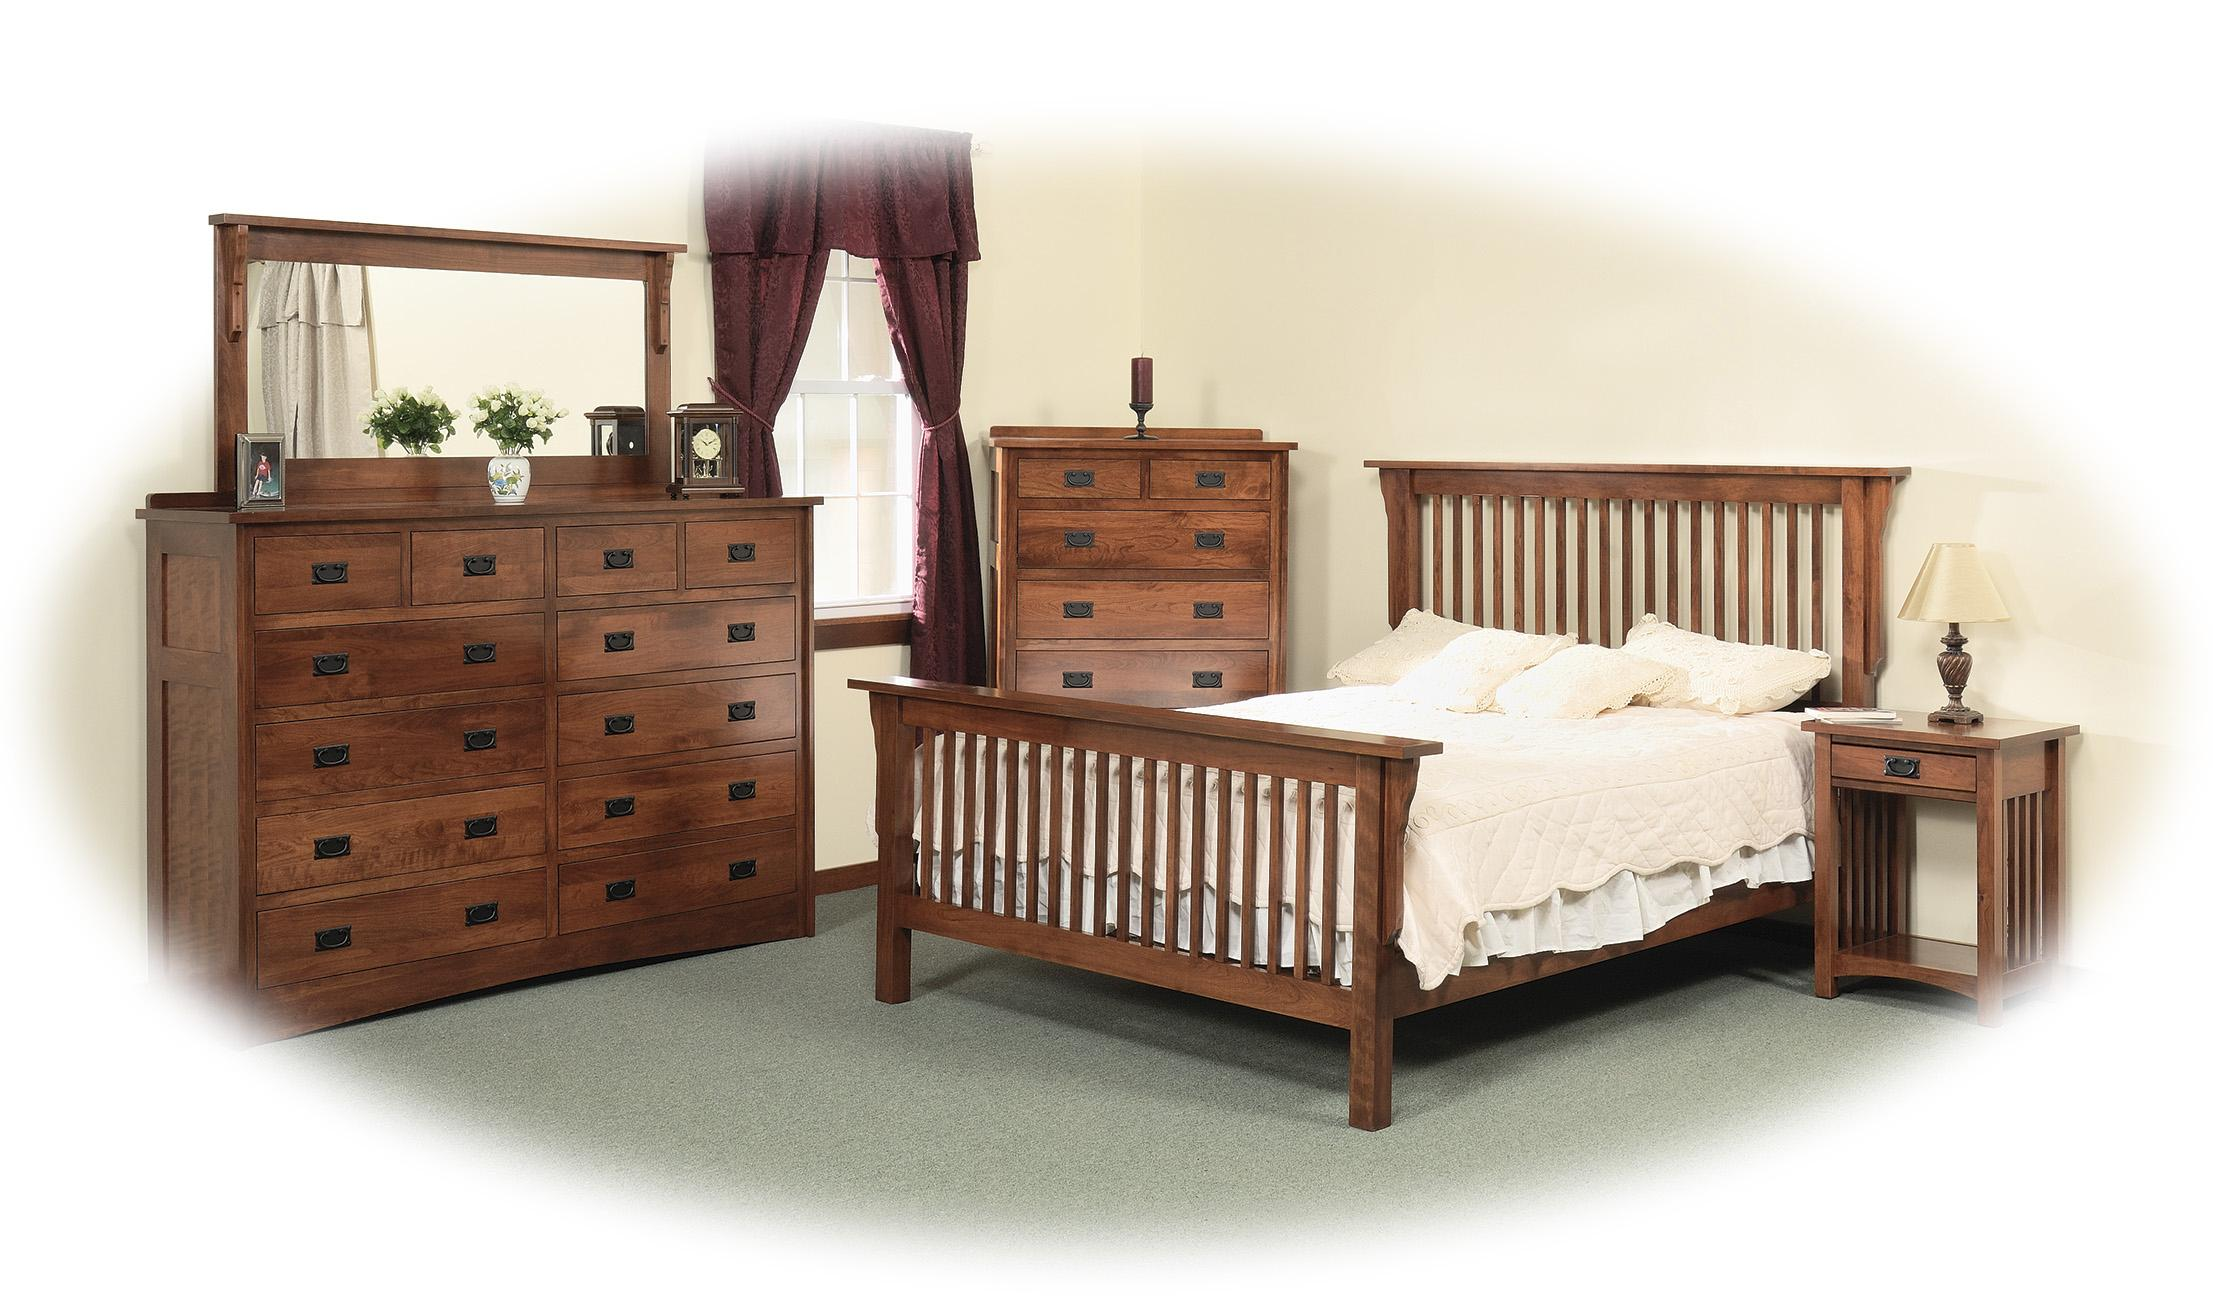 Daniels Amish Mission Drawer Solid Wood Double Dresser - Daniel's amish bedroom furniture